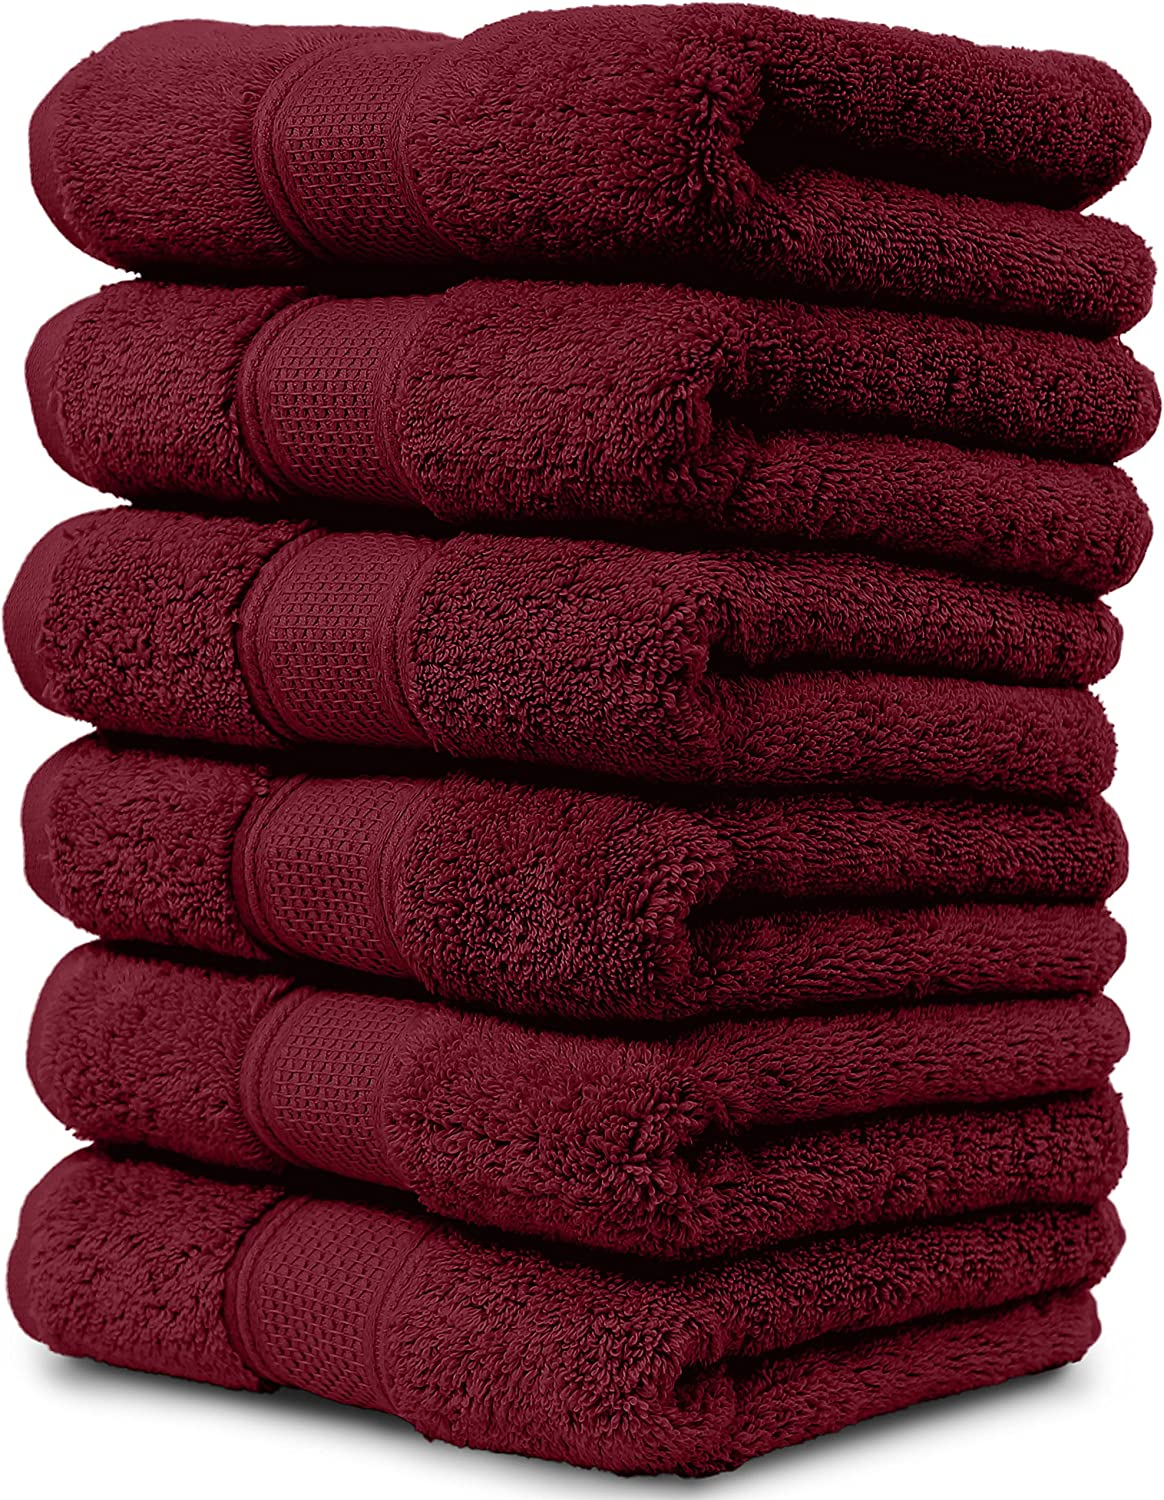 Maura 6 Piece Hand Towels Set Extra Large 16 X30 Premium Turkish Towels Thick Soft Plush And Highly Absorbent Luxury Hotel Spa Quality Towels Burgundy Home Kitchen Amazon Com